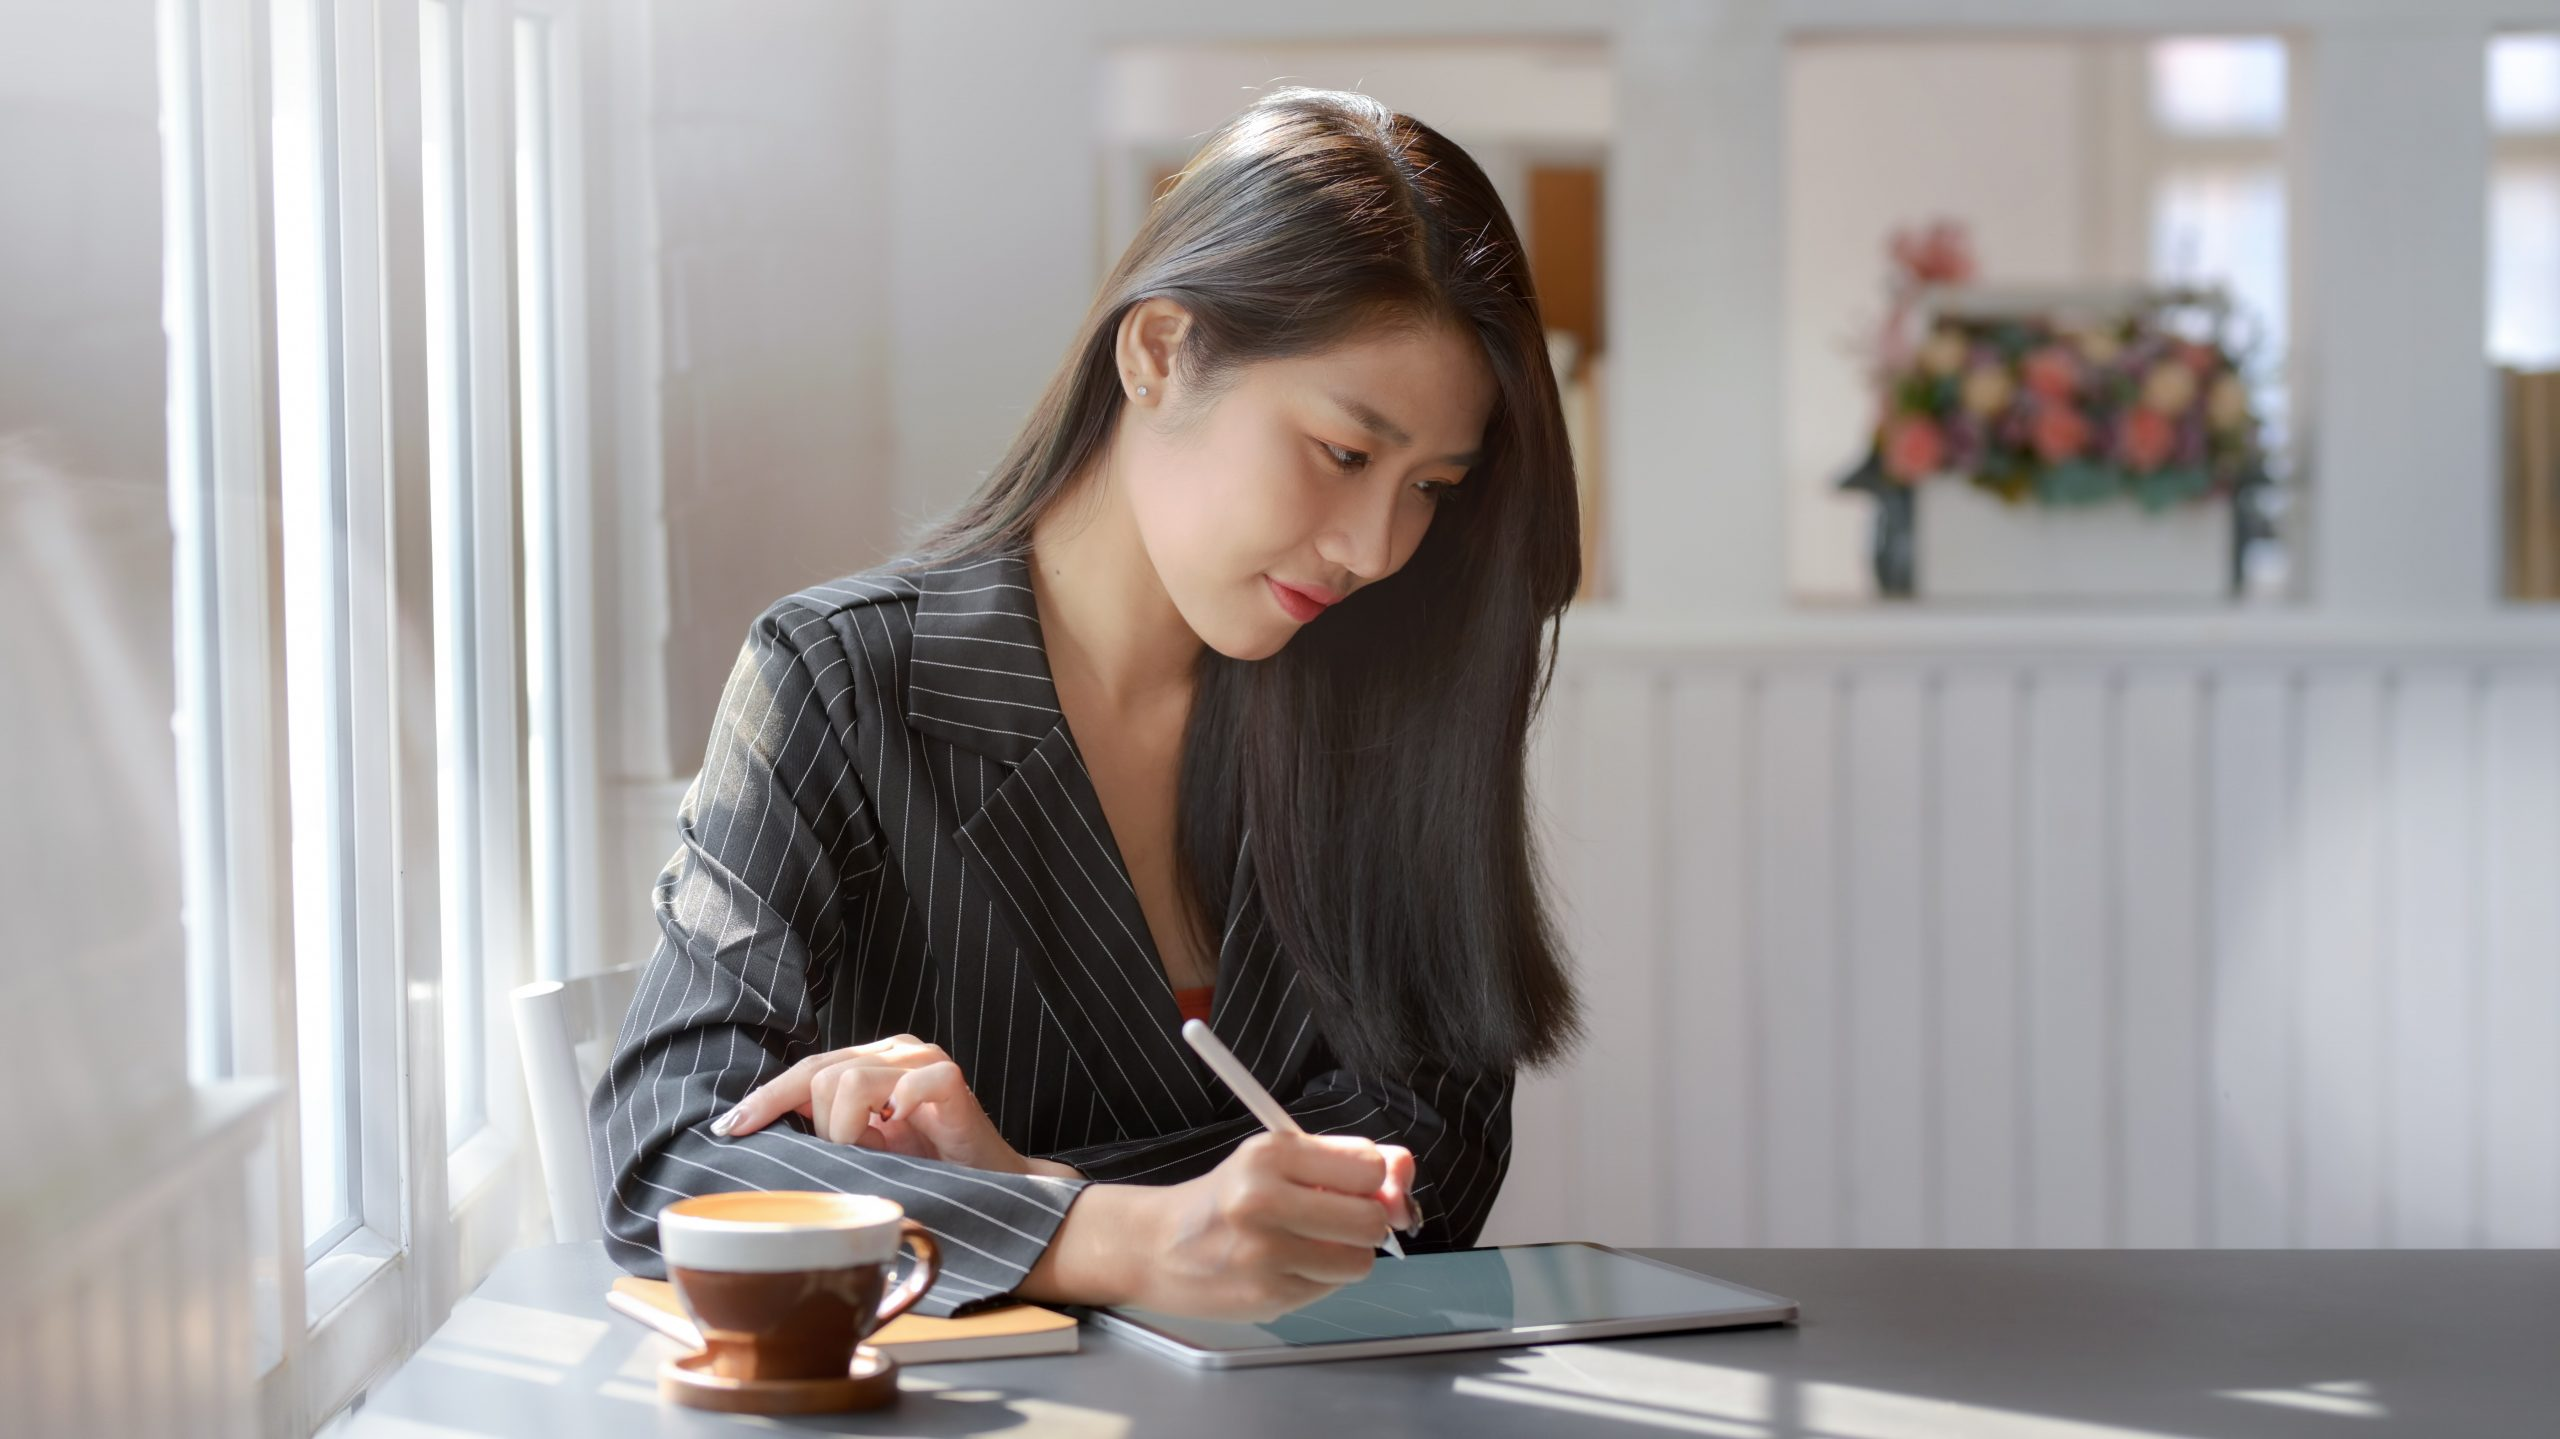 business accounting brisbane - woman writing with pen